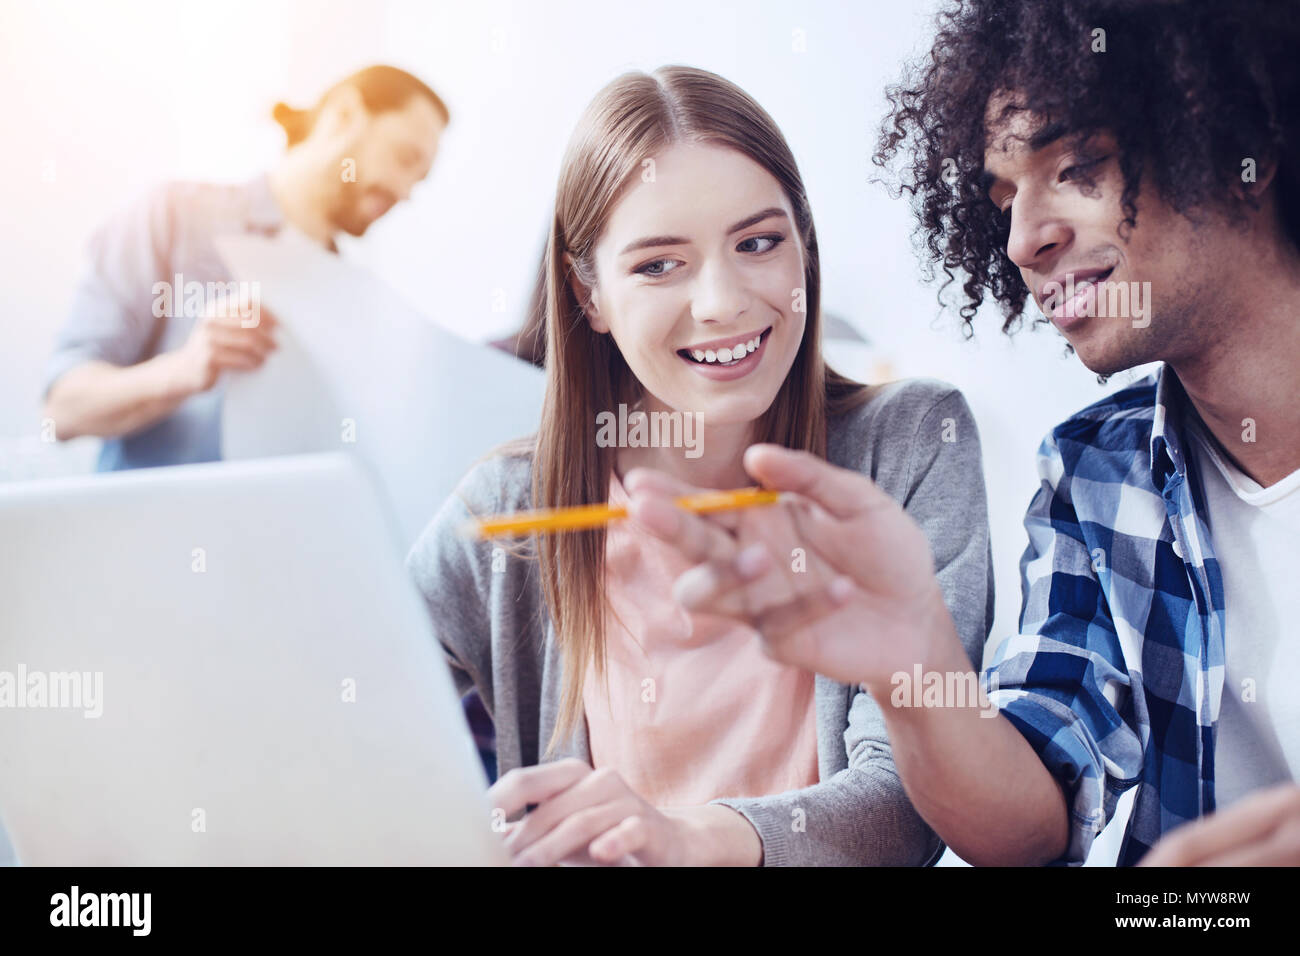 Attentive girl listening her group mate - Stock Image